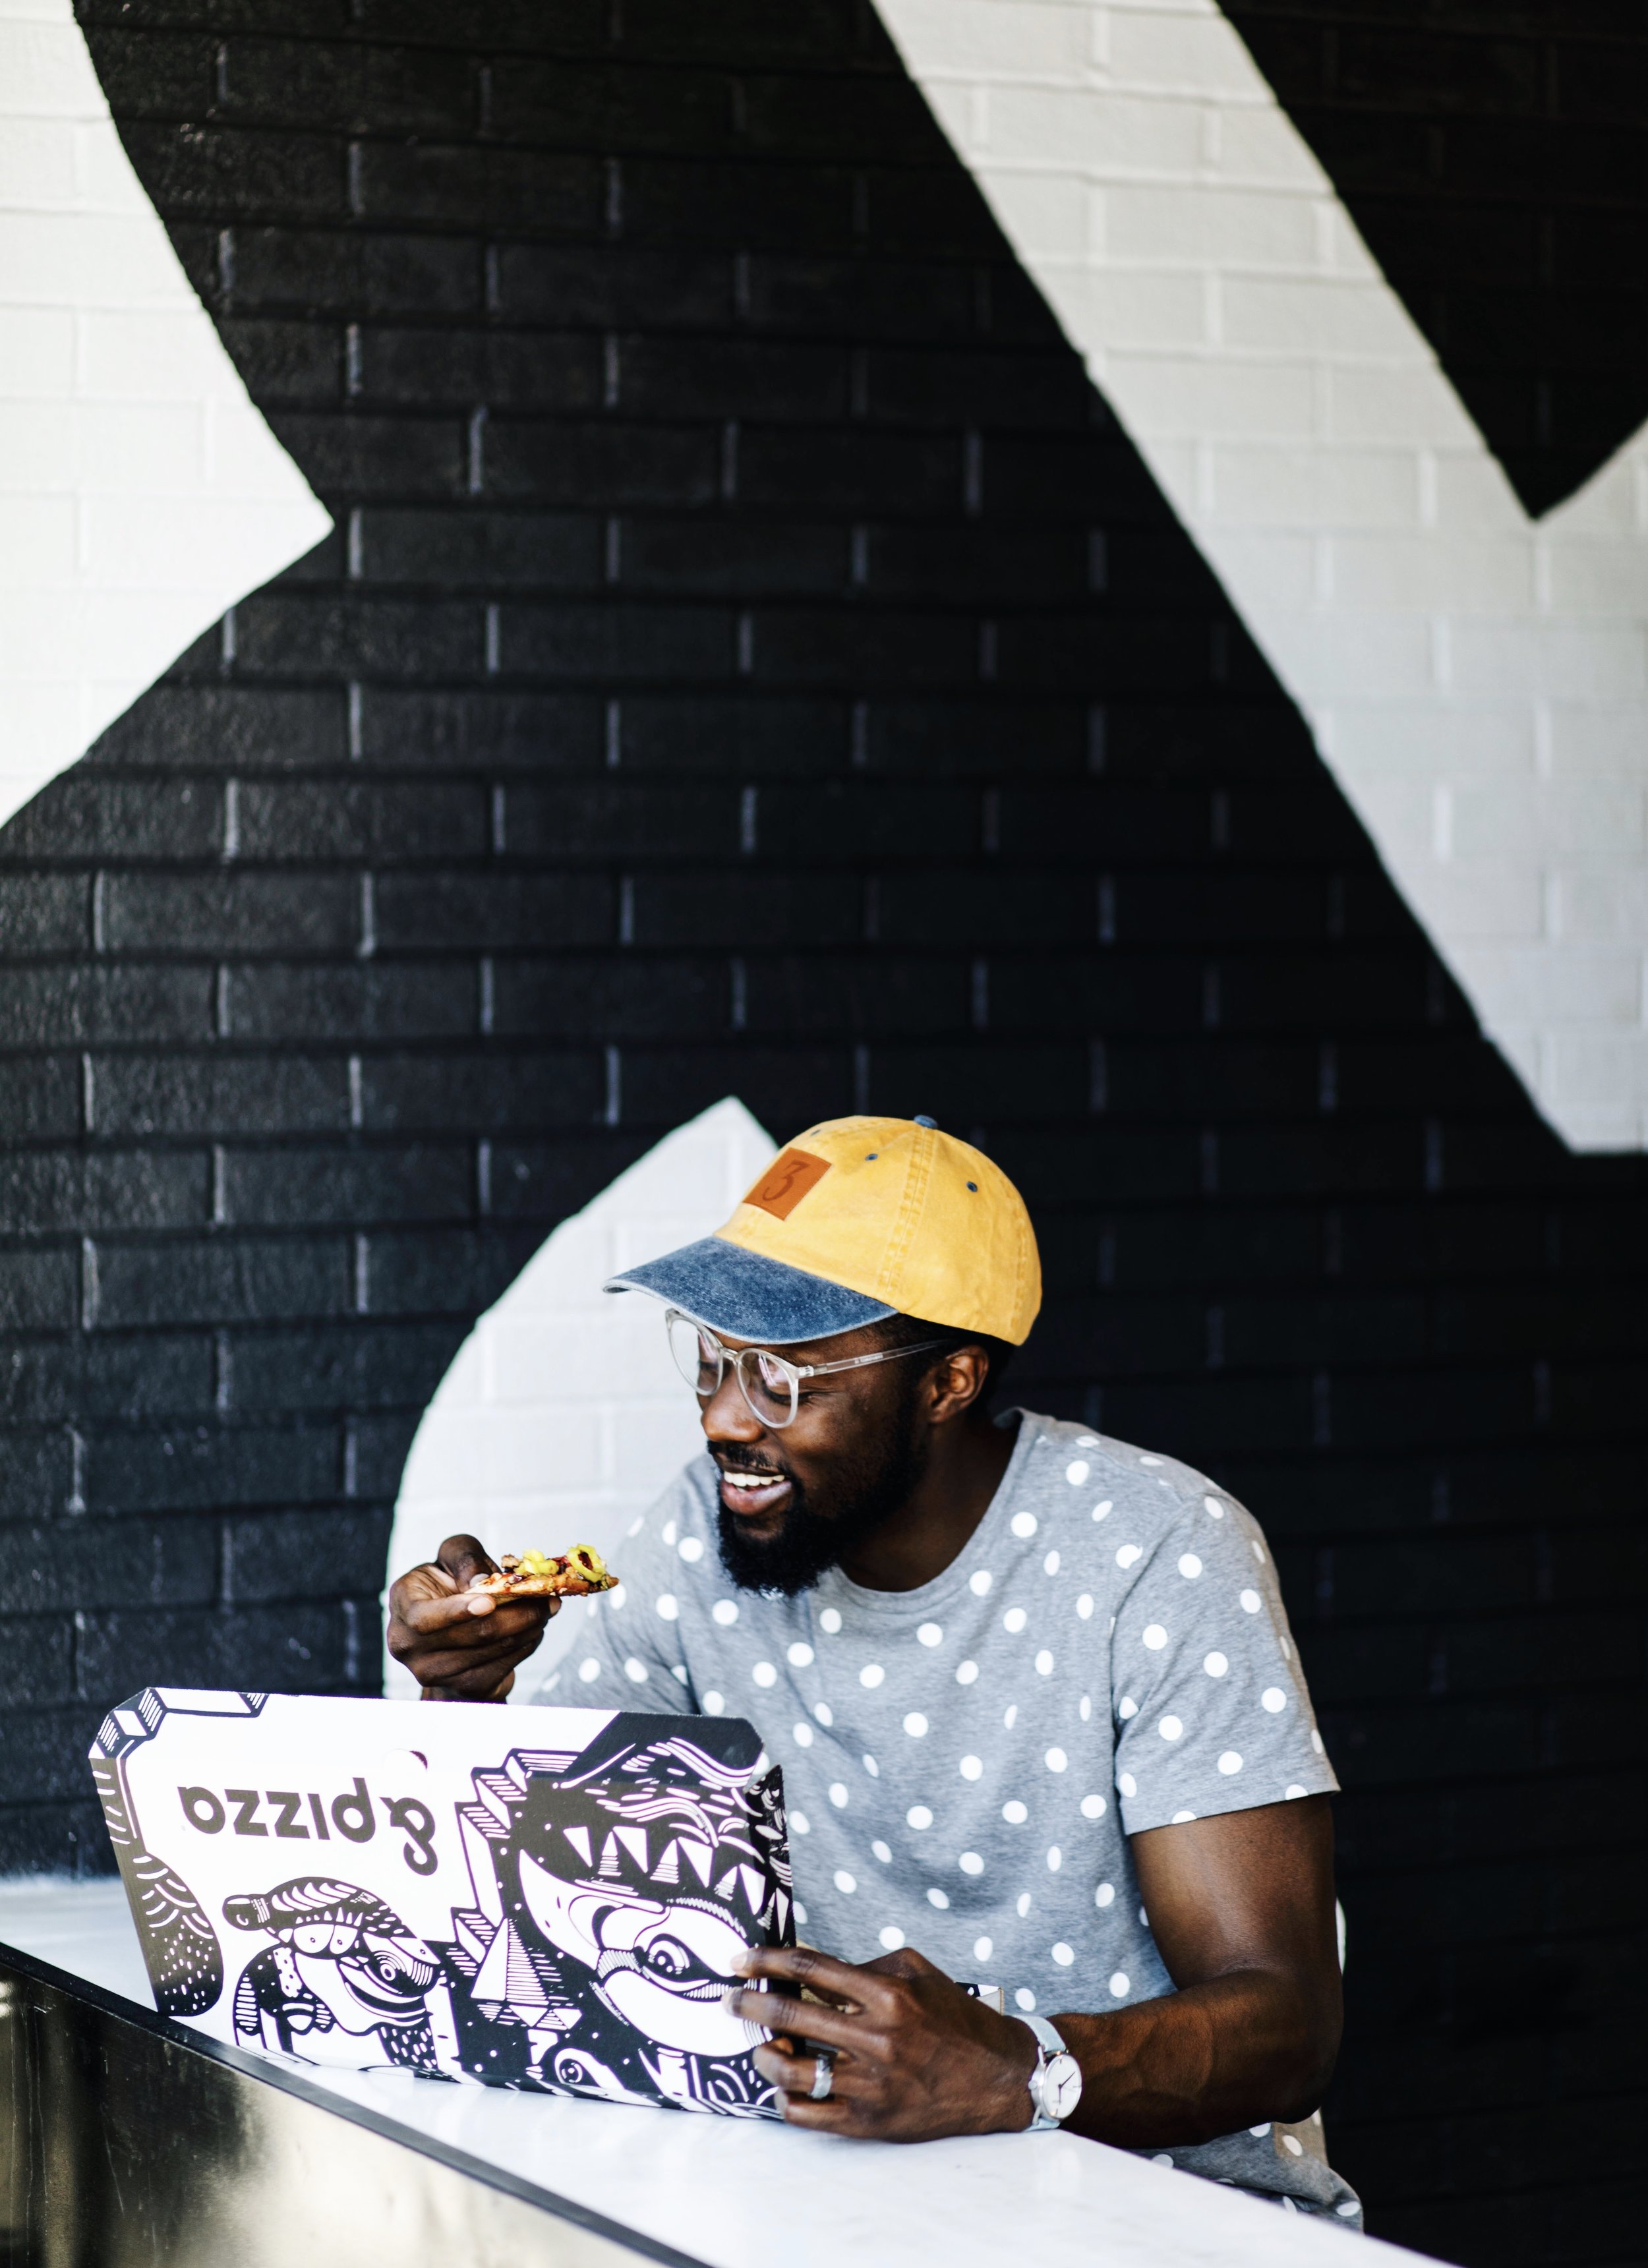 Image of brand influencer the creative gentleman holding a slice of &pizza with a black and white &pizza box. He is wearing a grey tee shirt with white polka dots, clear framed glasses, a yellow hat with a number three in the front, and a watch with a denim strap.